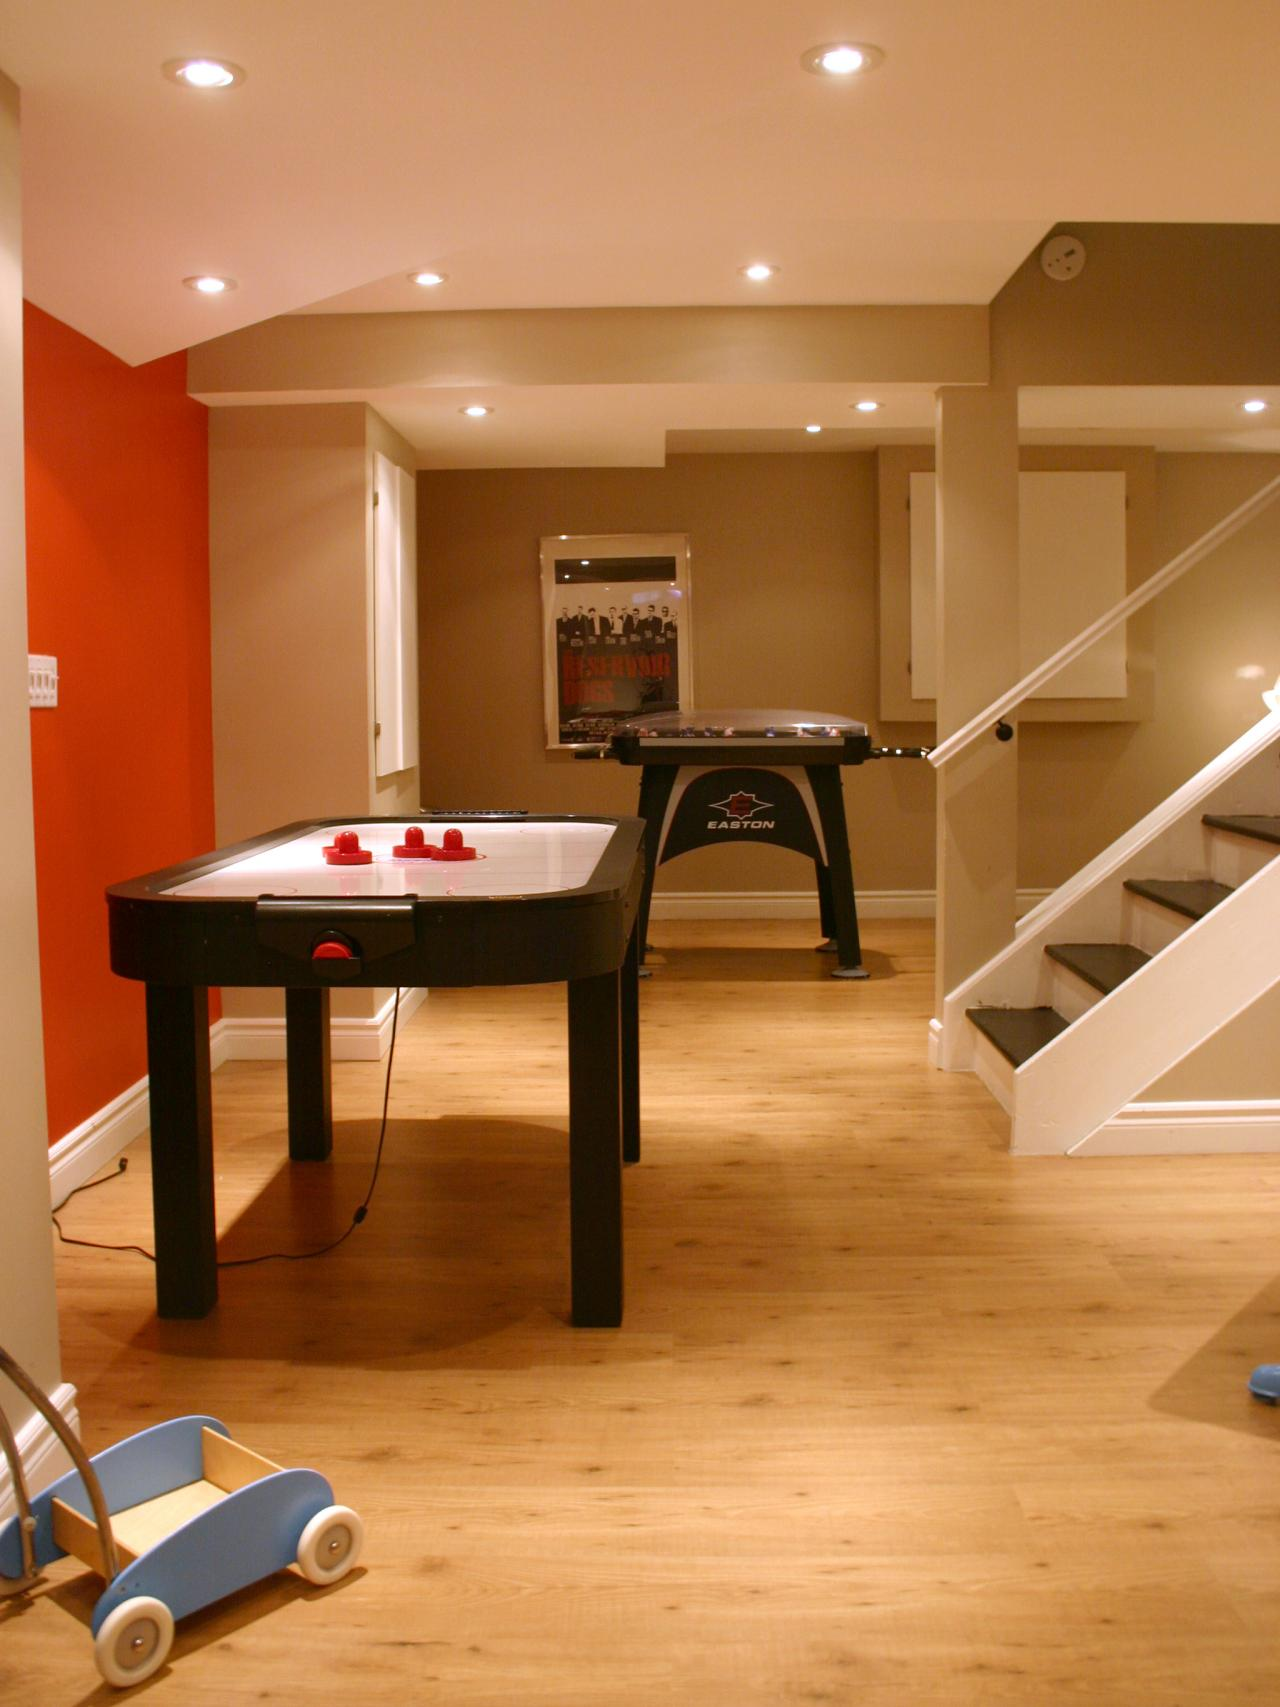 Basement design ideas decorating and design ideas for Basement game room ideas